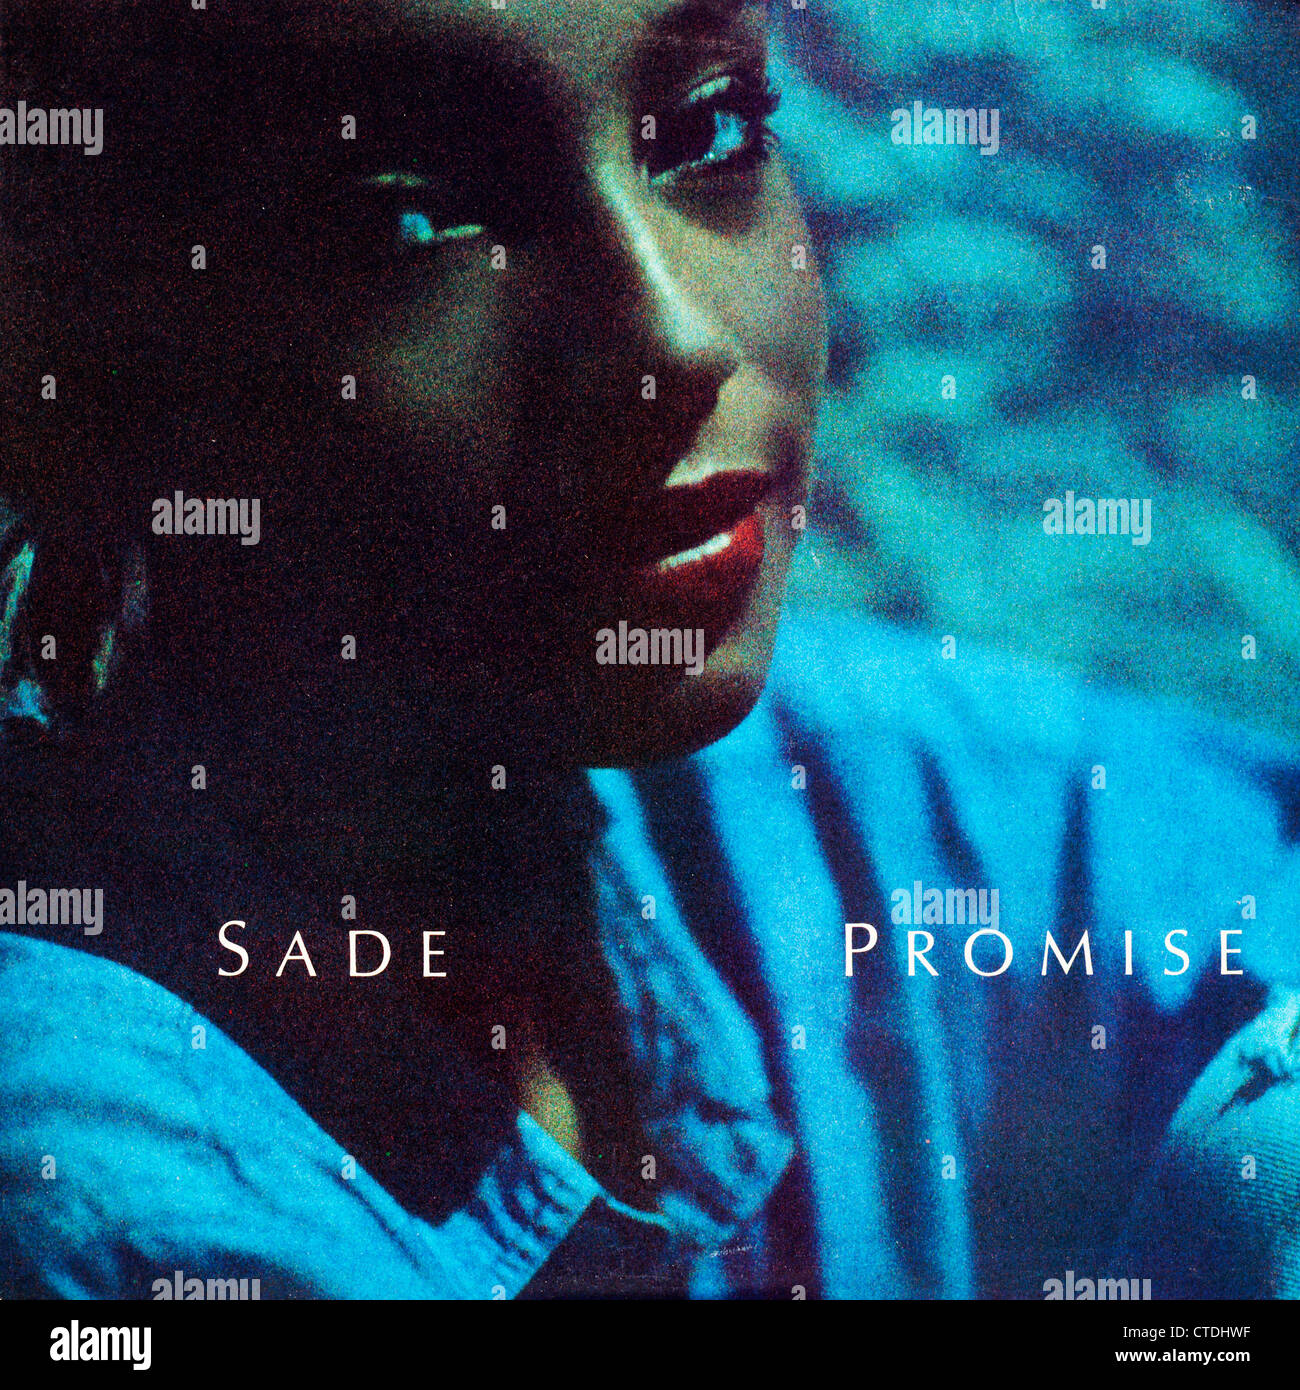 Vinyl LP record album cover from Sade - Promise  Editorial